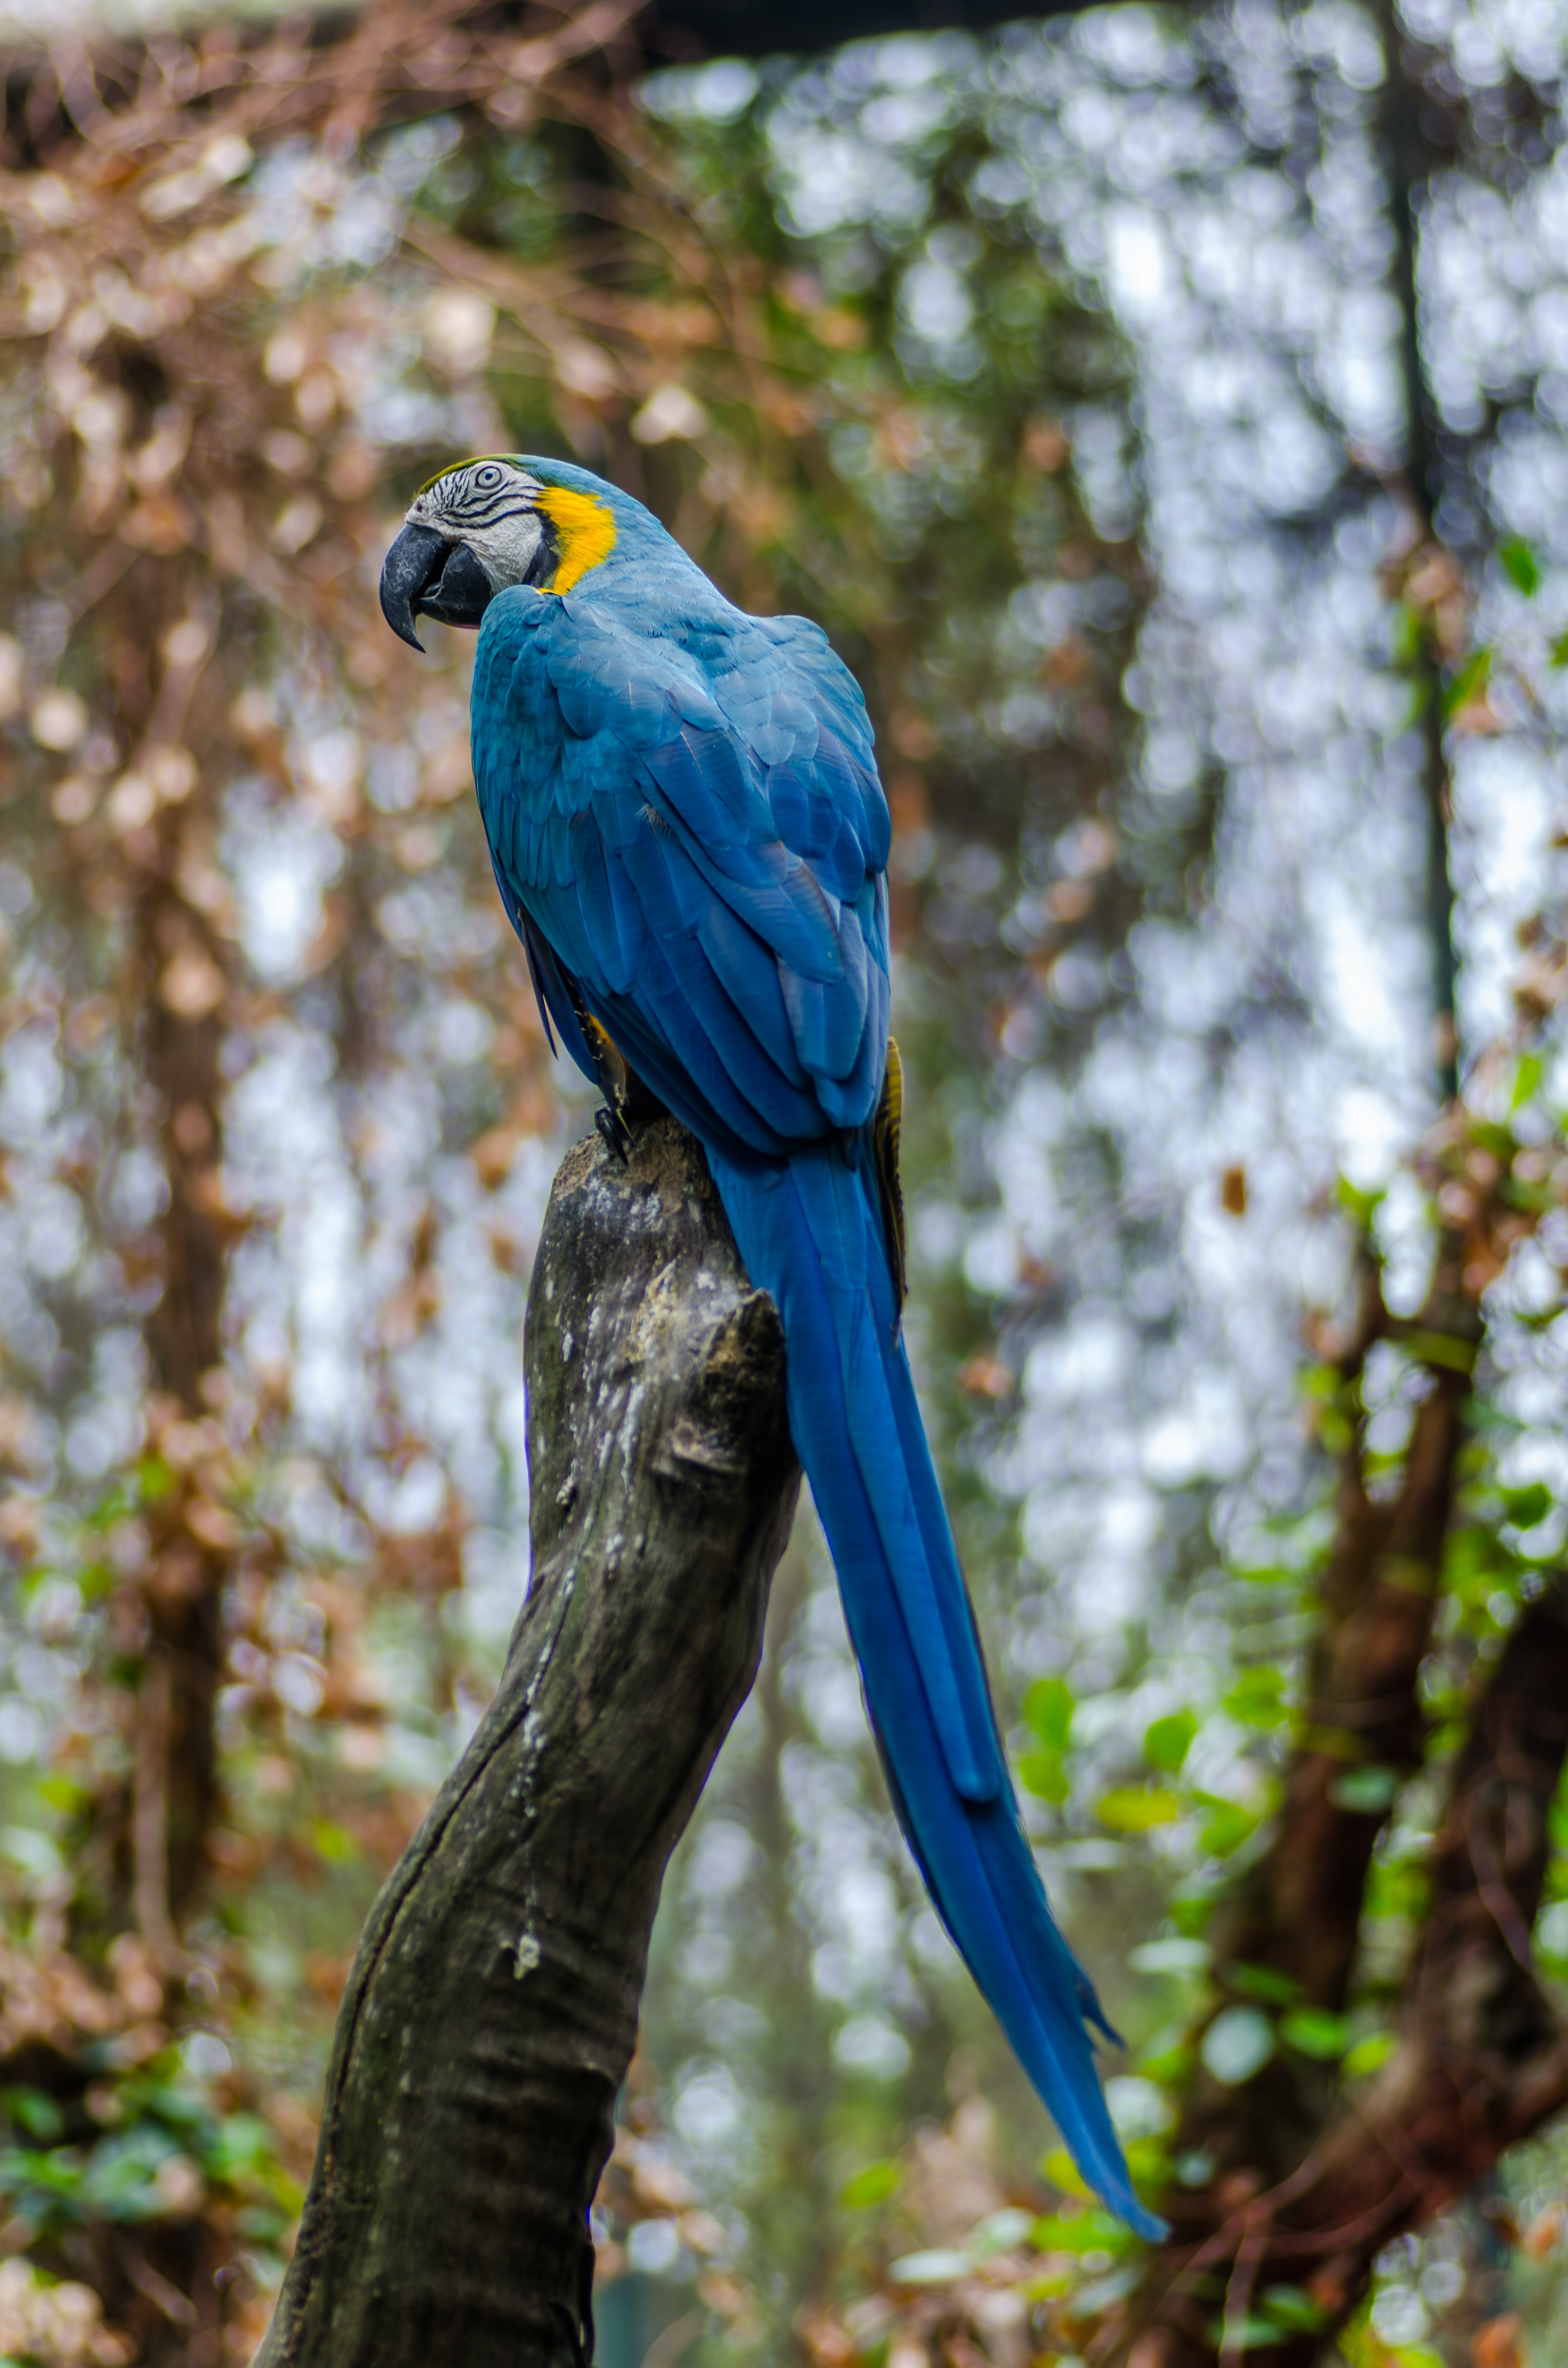 A blue macaw perched on a thick branch